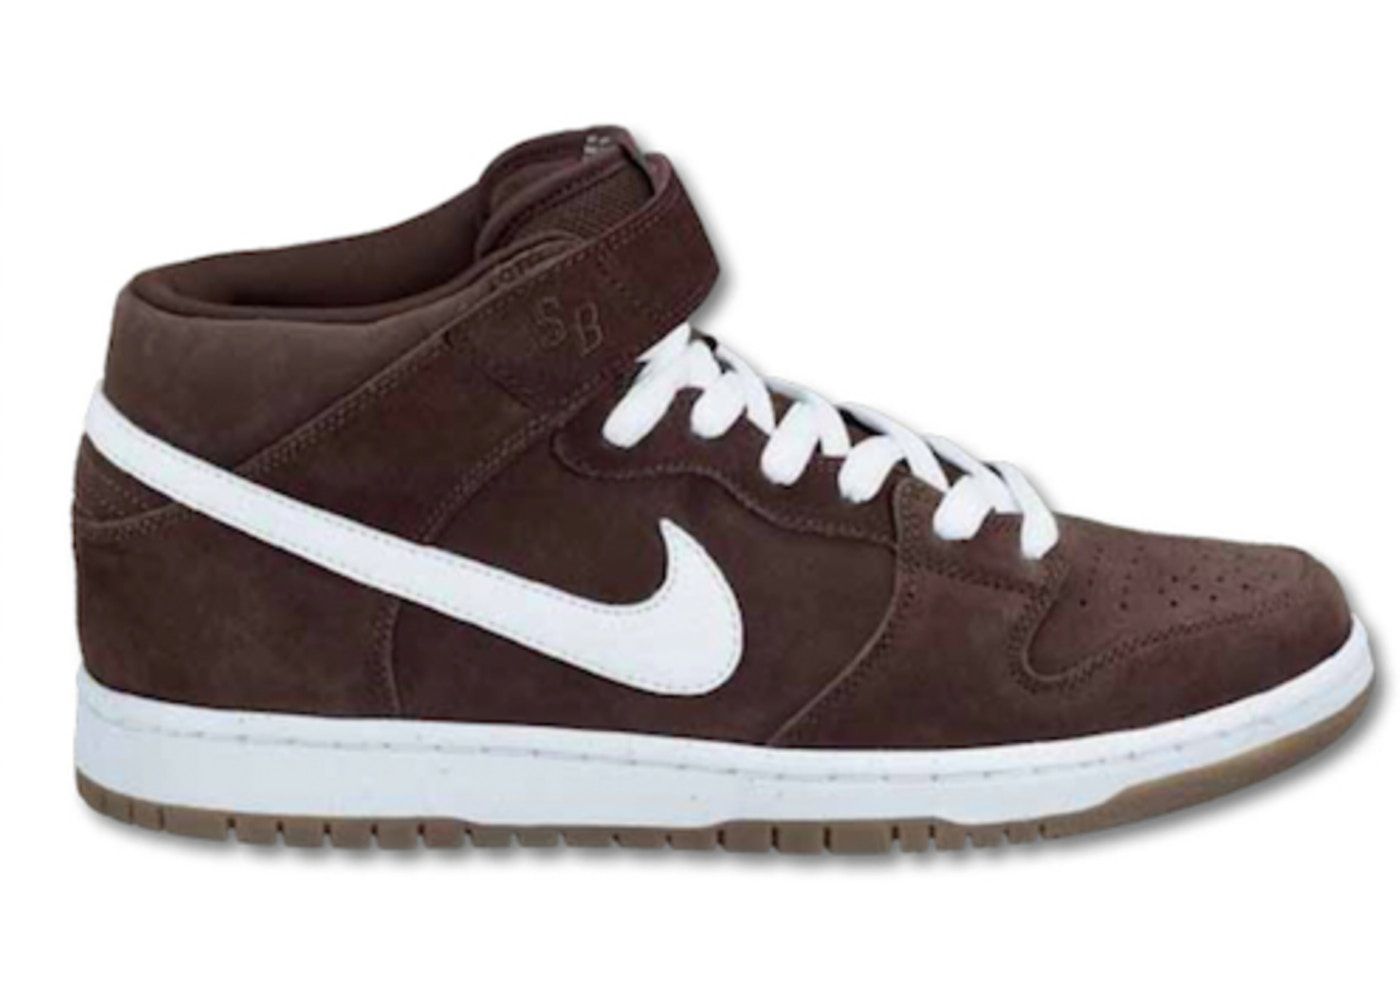 new concept decaa 267e8 Nike Dunk SB Mid Baroque Brown White Gum - 314383-219